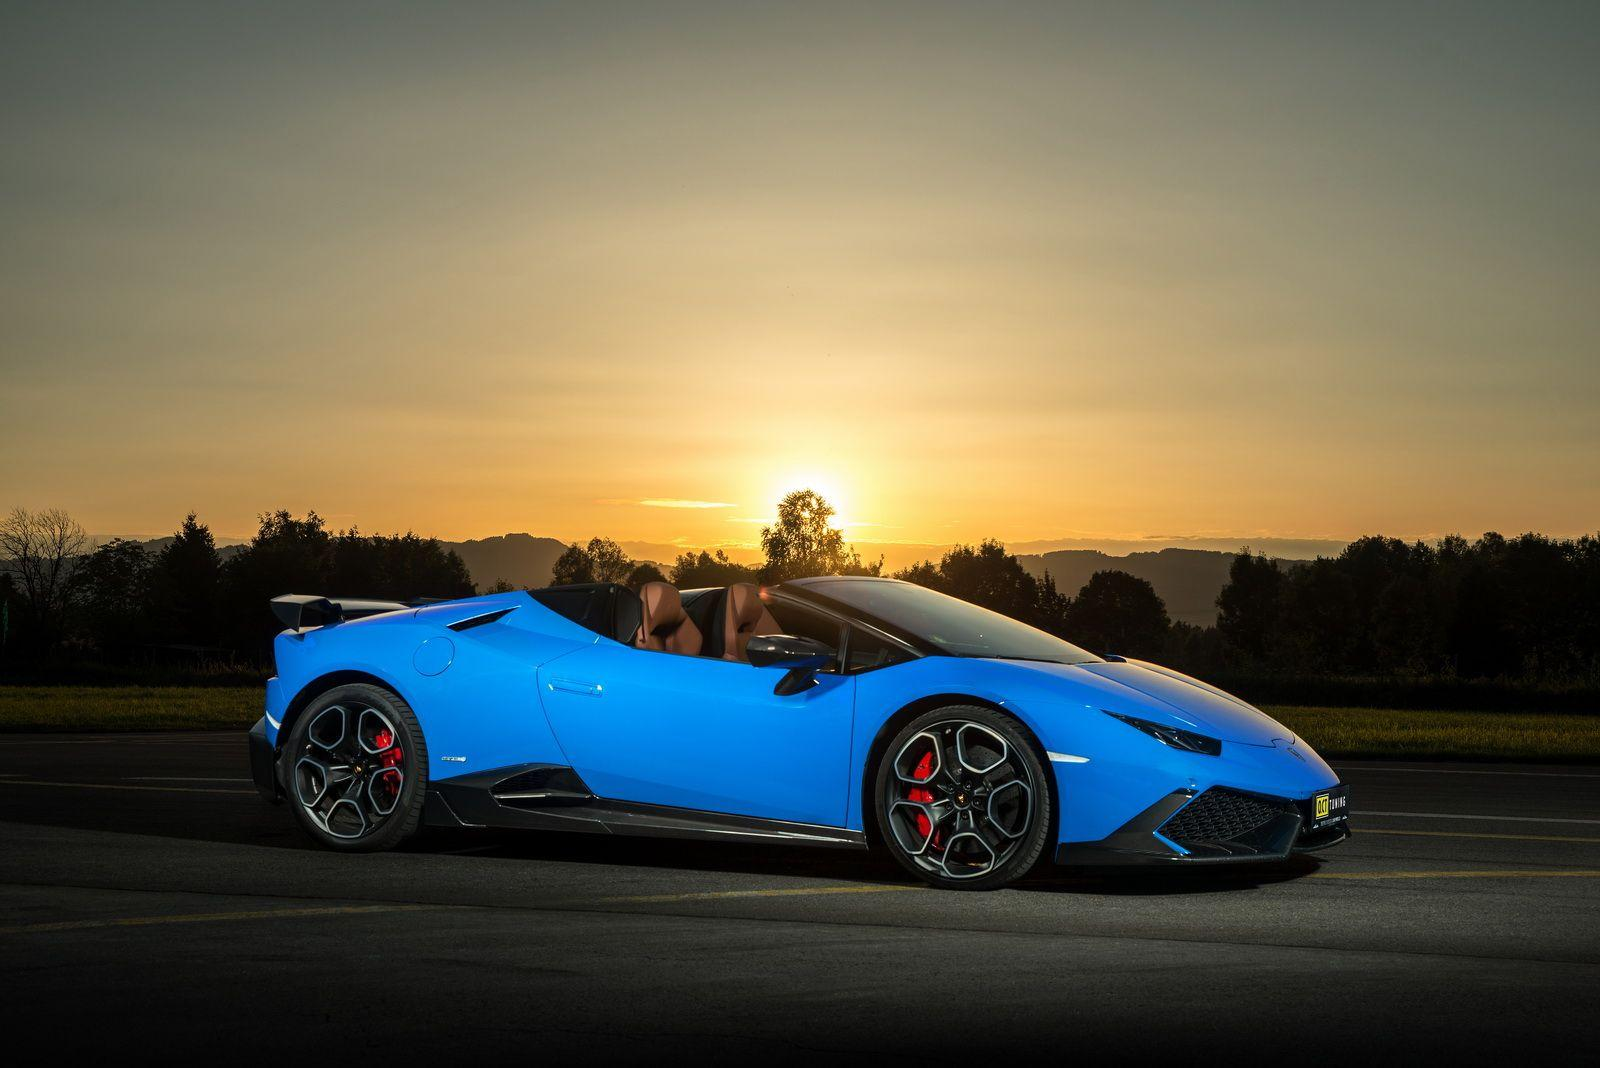 2017 Lamborghini Huracán Spyder By O.CT Tuning Review